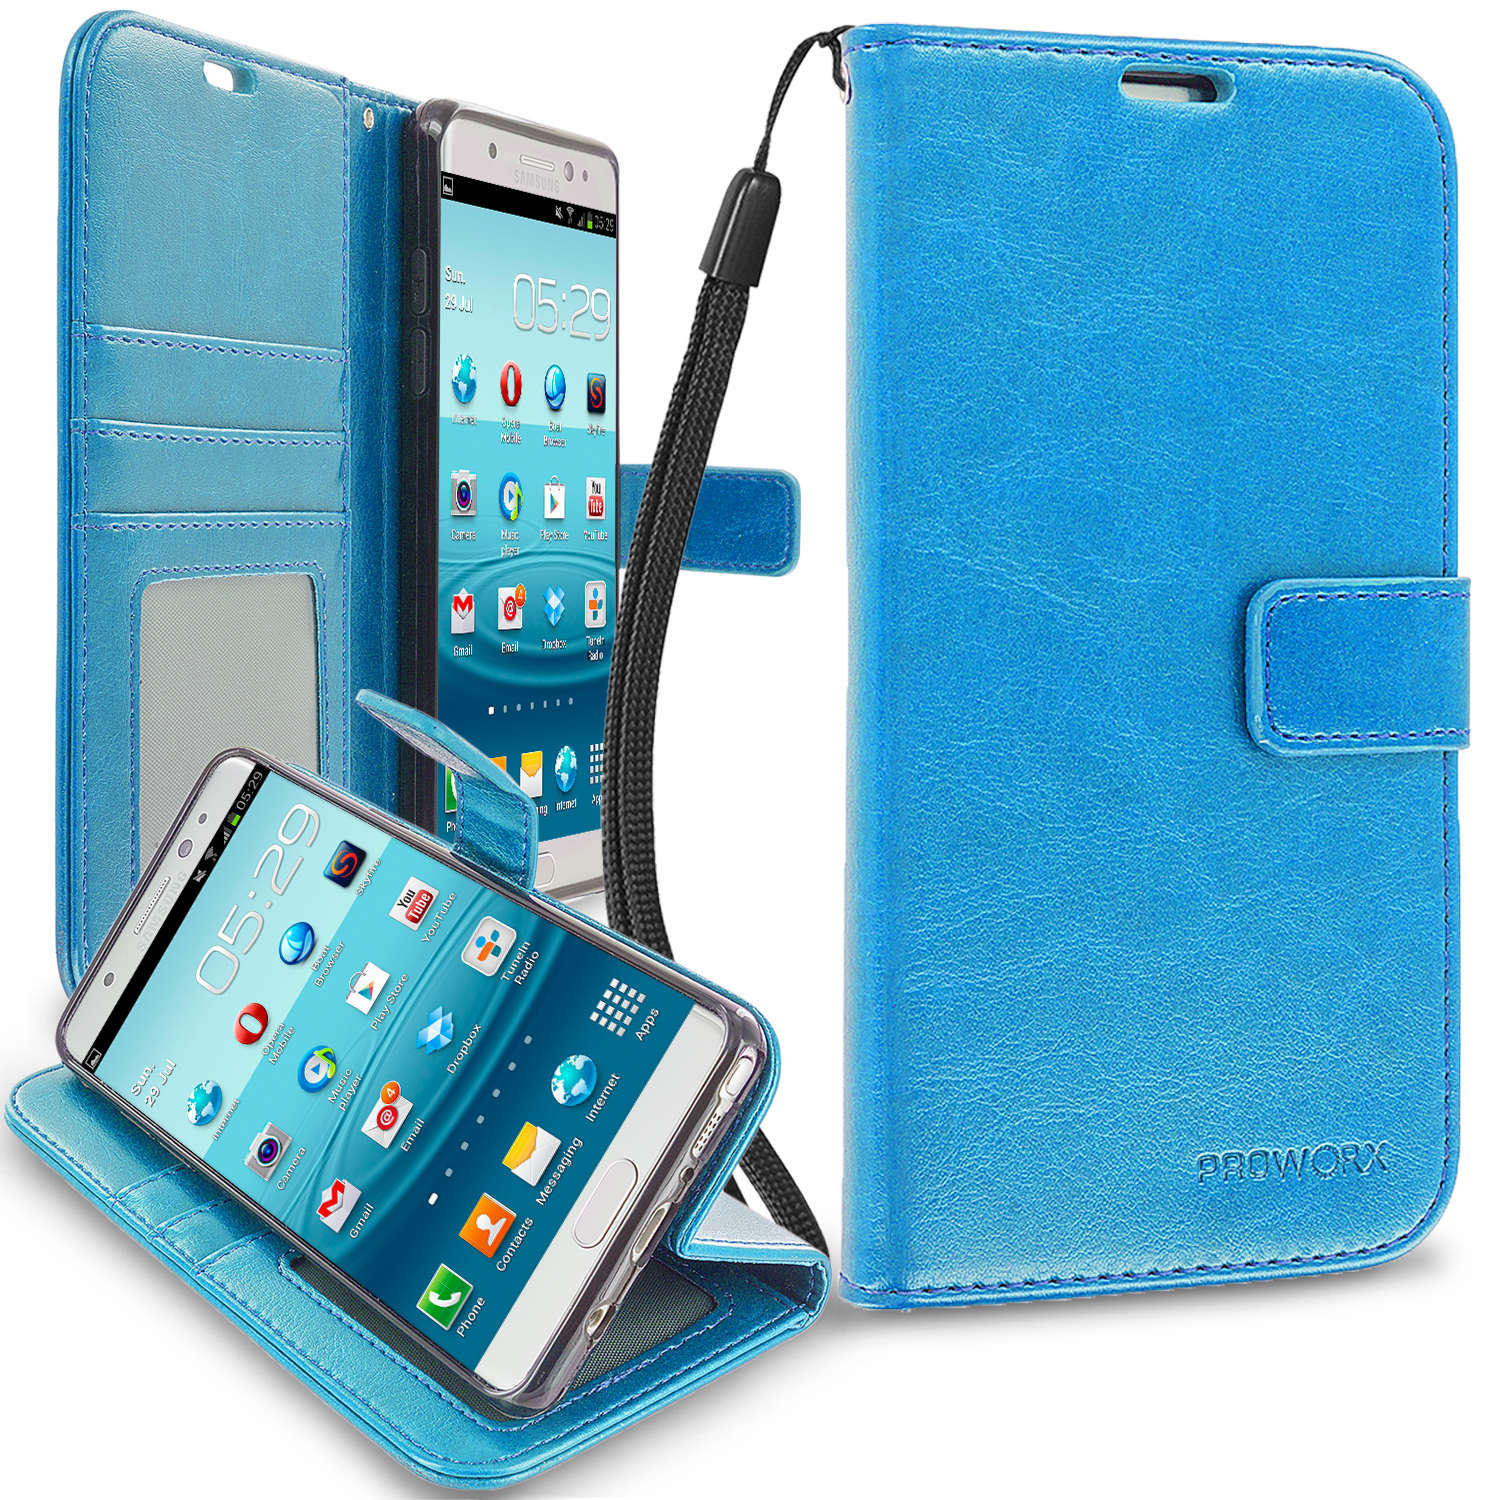 Samsung Galaxy Note 7 Baby Blue ProWorx Wallet Case Luxury PU Leather Case Cover With Card Slots & Stand